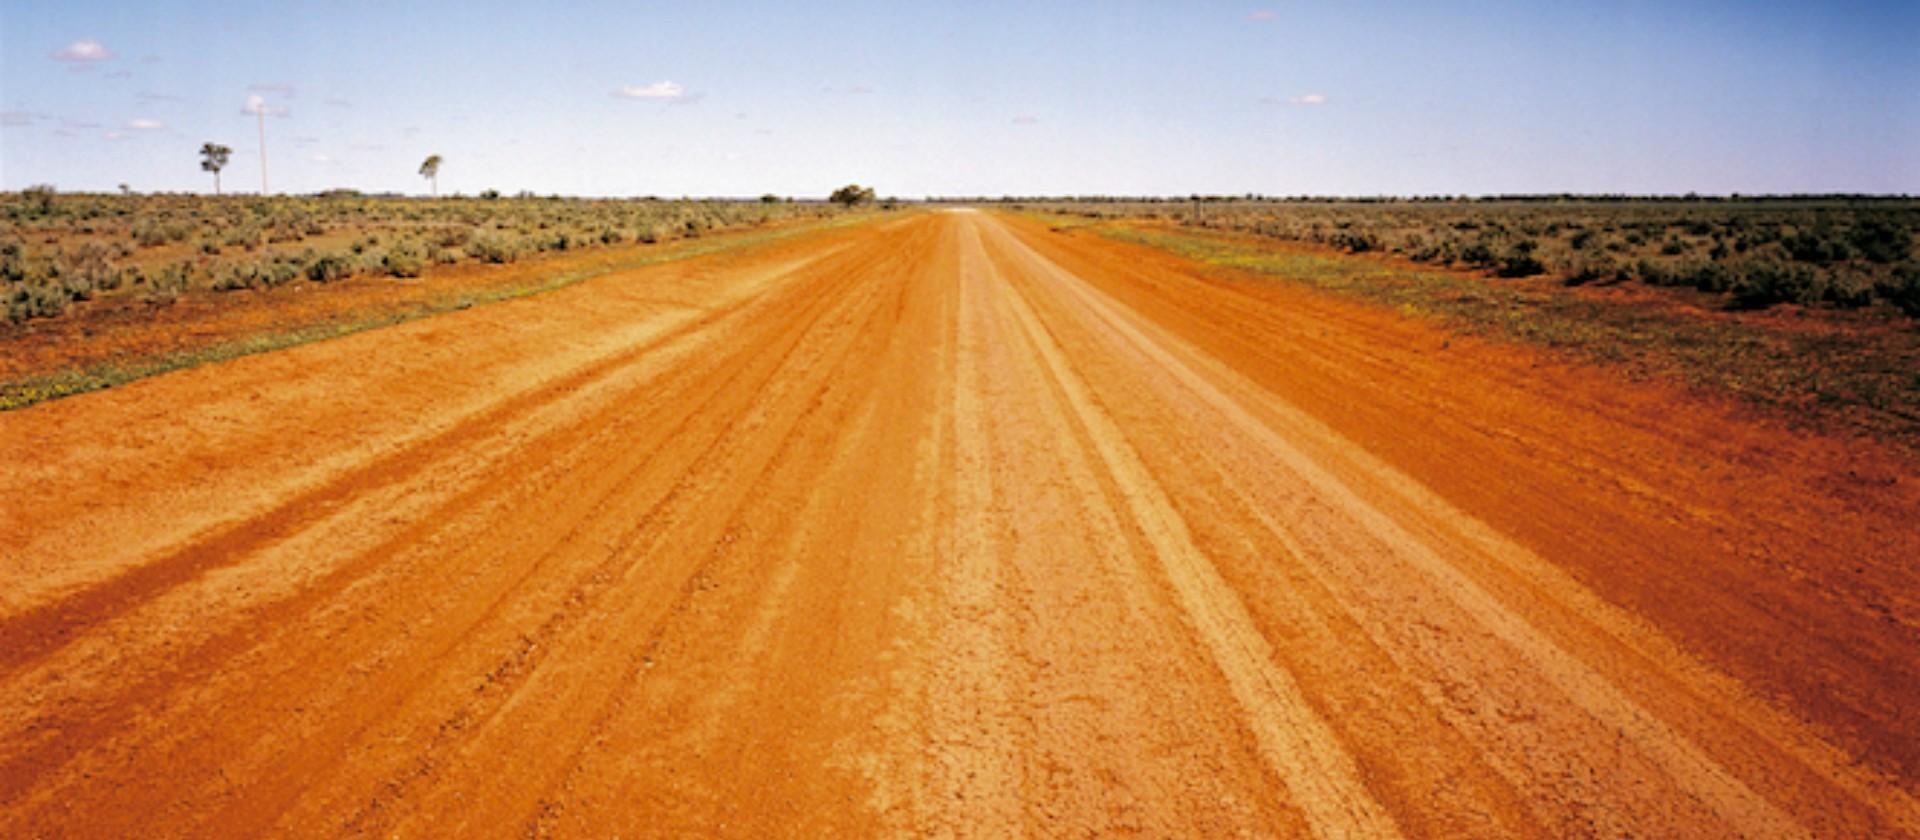 Red dirt road at Mundi Mundi Near Broken Hill